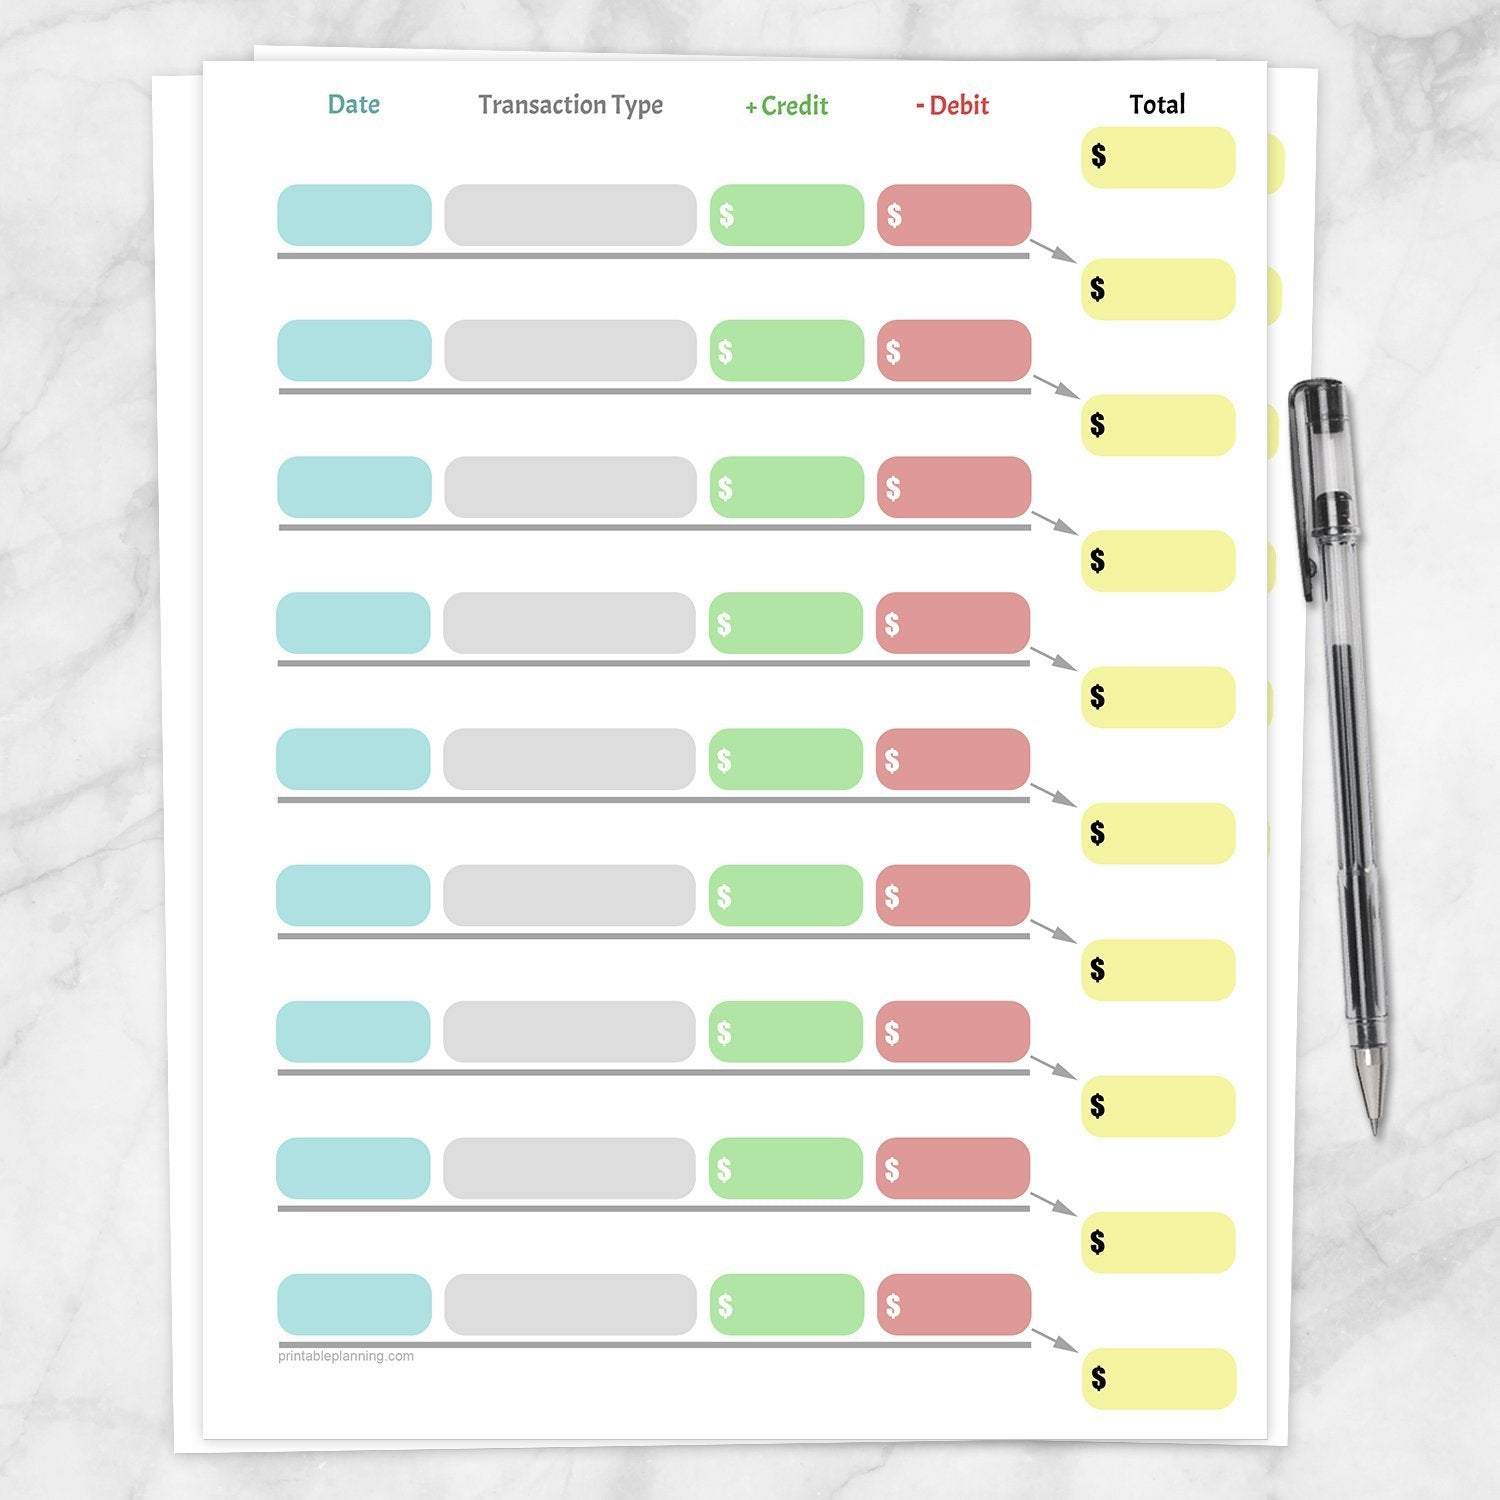 Printable Simple Color-Coded Financial Transaction Register at Printable Planning